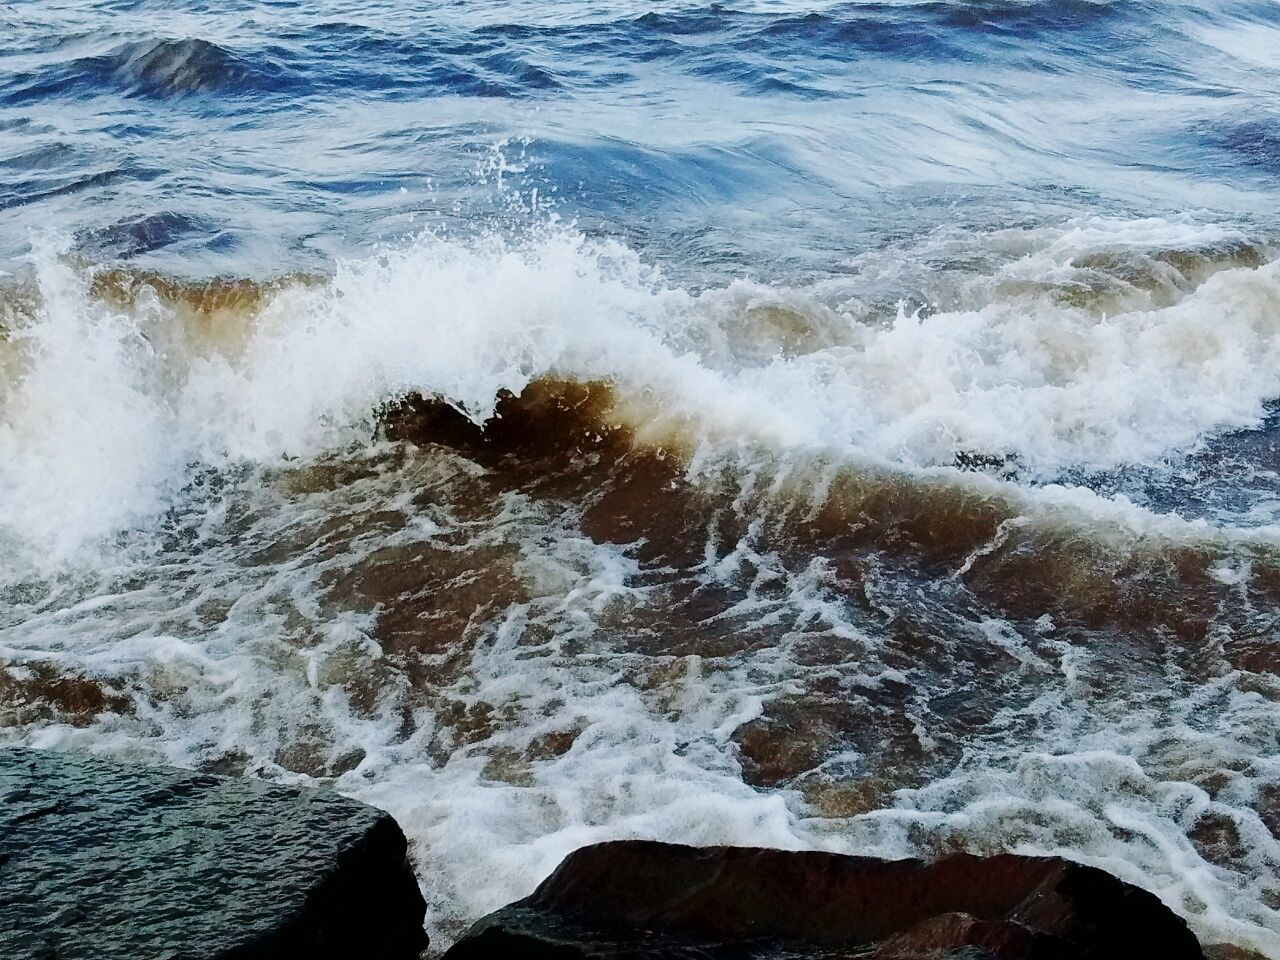 Lake Superior Lake Water Waves Fierce Splash Rocks Michigan Nature Beautiful